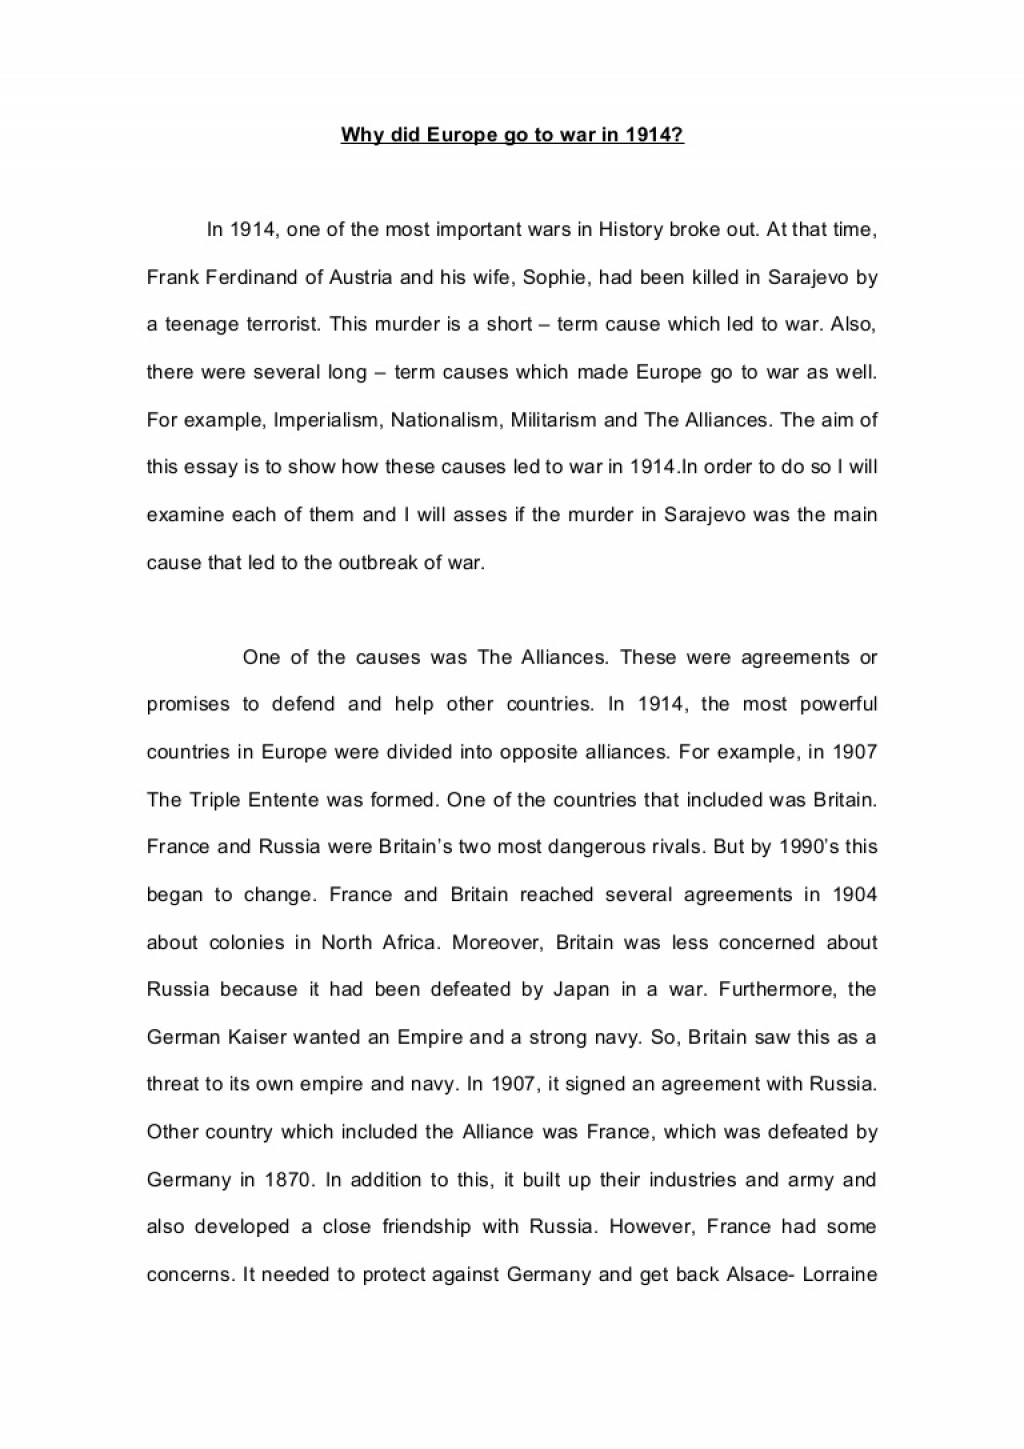 001 Essay Example Ww1 Whydideuropegotowarin1914essay Phpapp01 Thumbnail Impressive World War 1 Causes Conclusion Topics Large